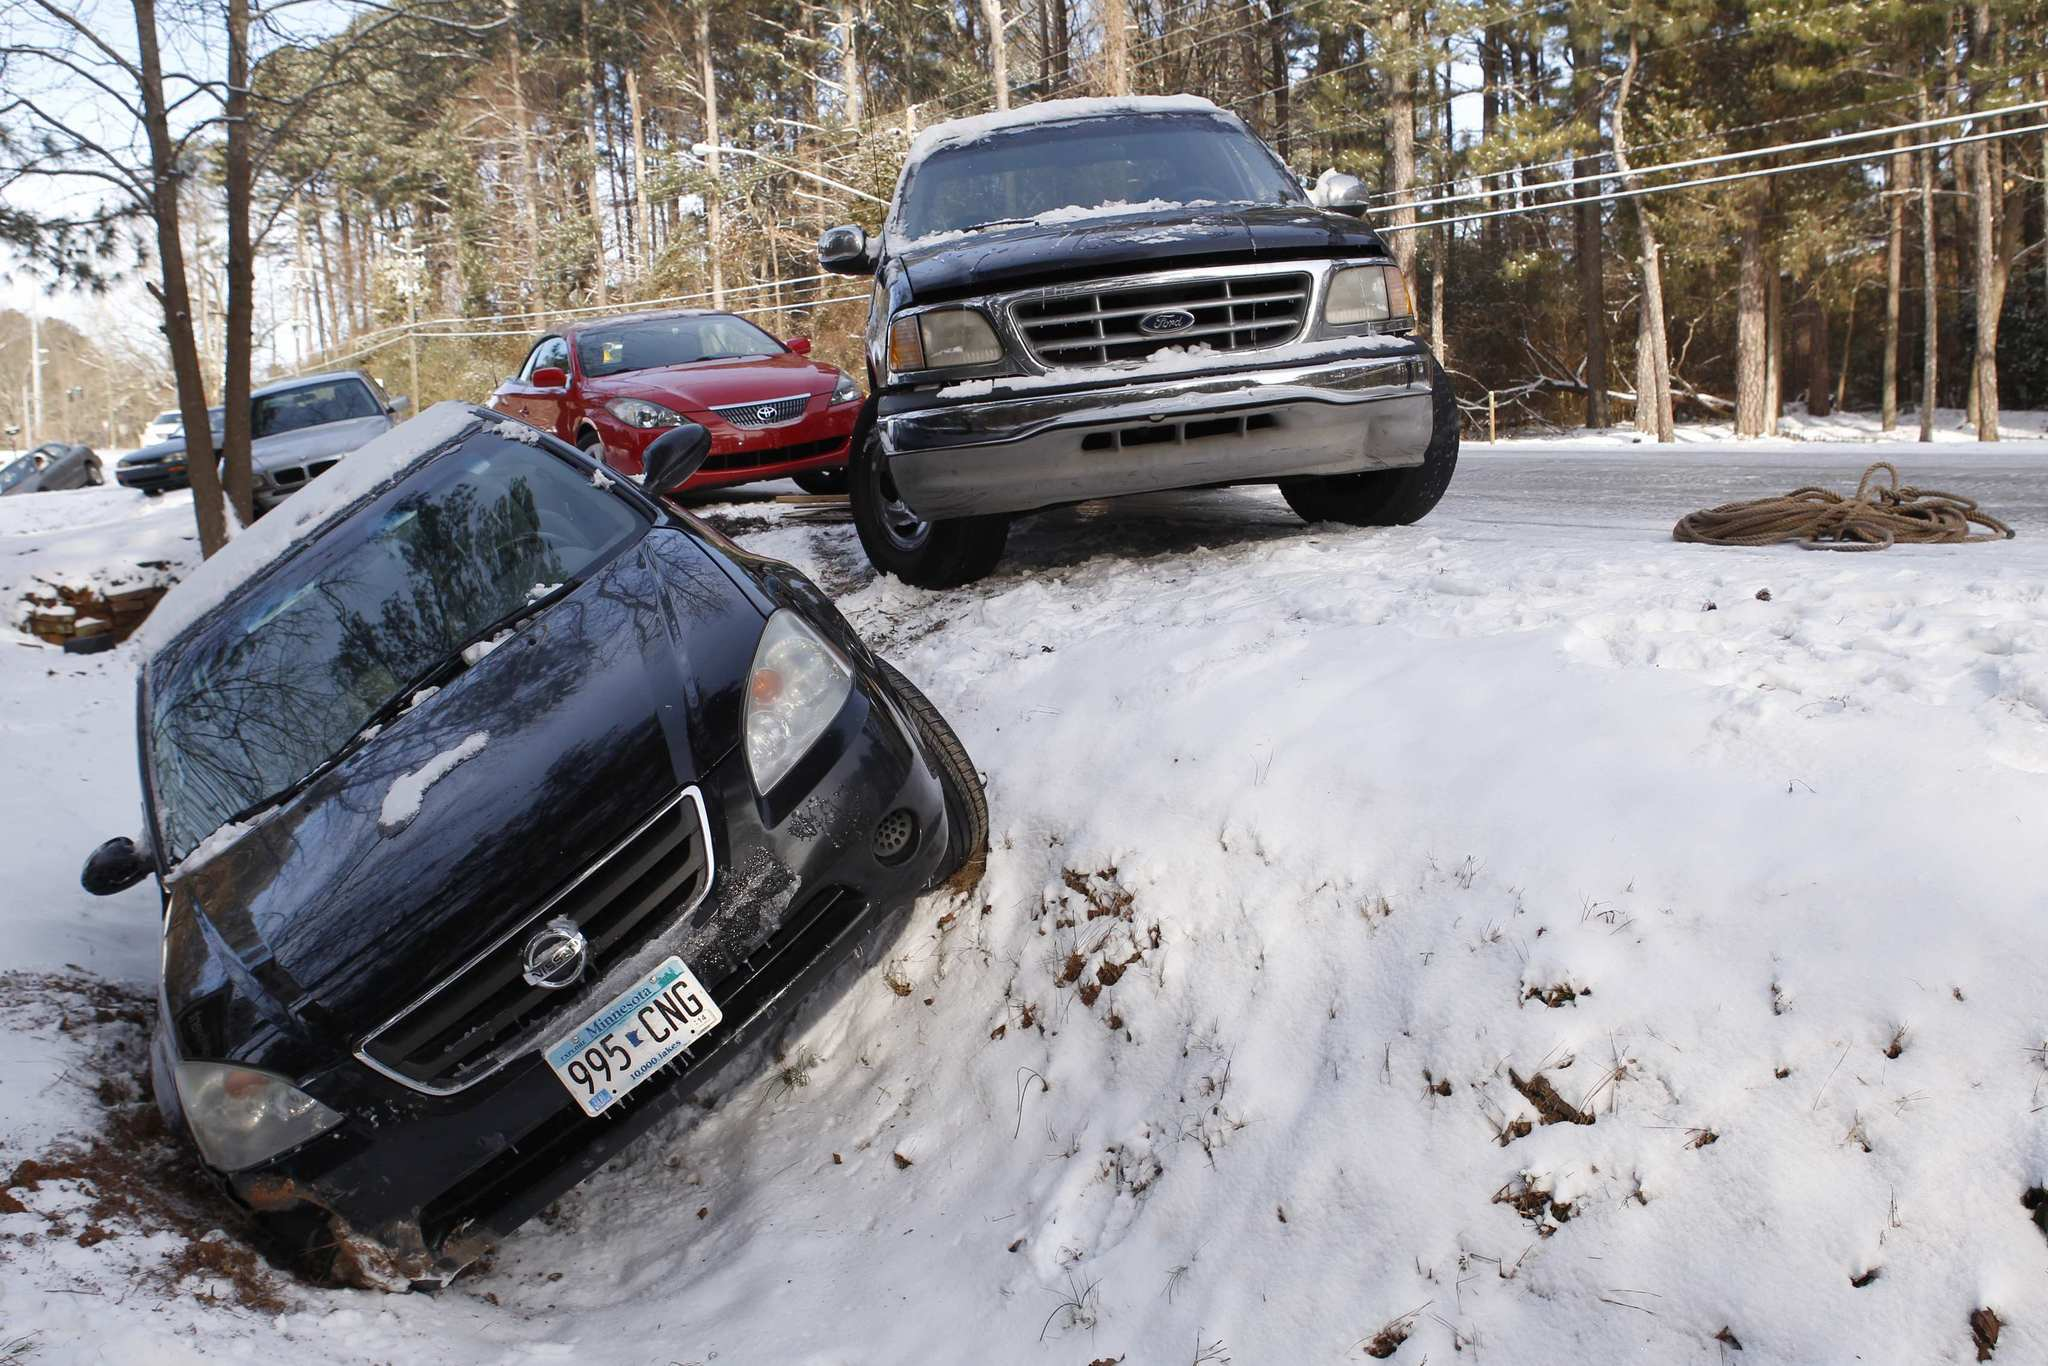 A car sits in a ditch along with other abandoned cars after running off the roadway due to a snow storm in Atlanta, Georgia, January 29, 2014. A rare winter storm gripped the U.S. South on Wednesday, killing five people, stranding children overnight at their schools, gnarling traffic across many states and canceling flights at the world's busiest airport.